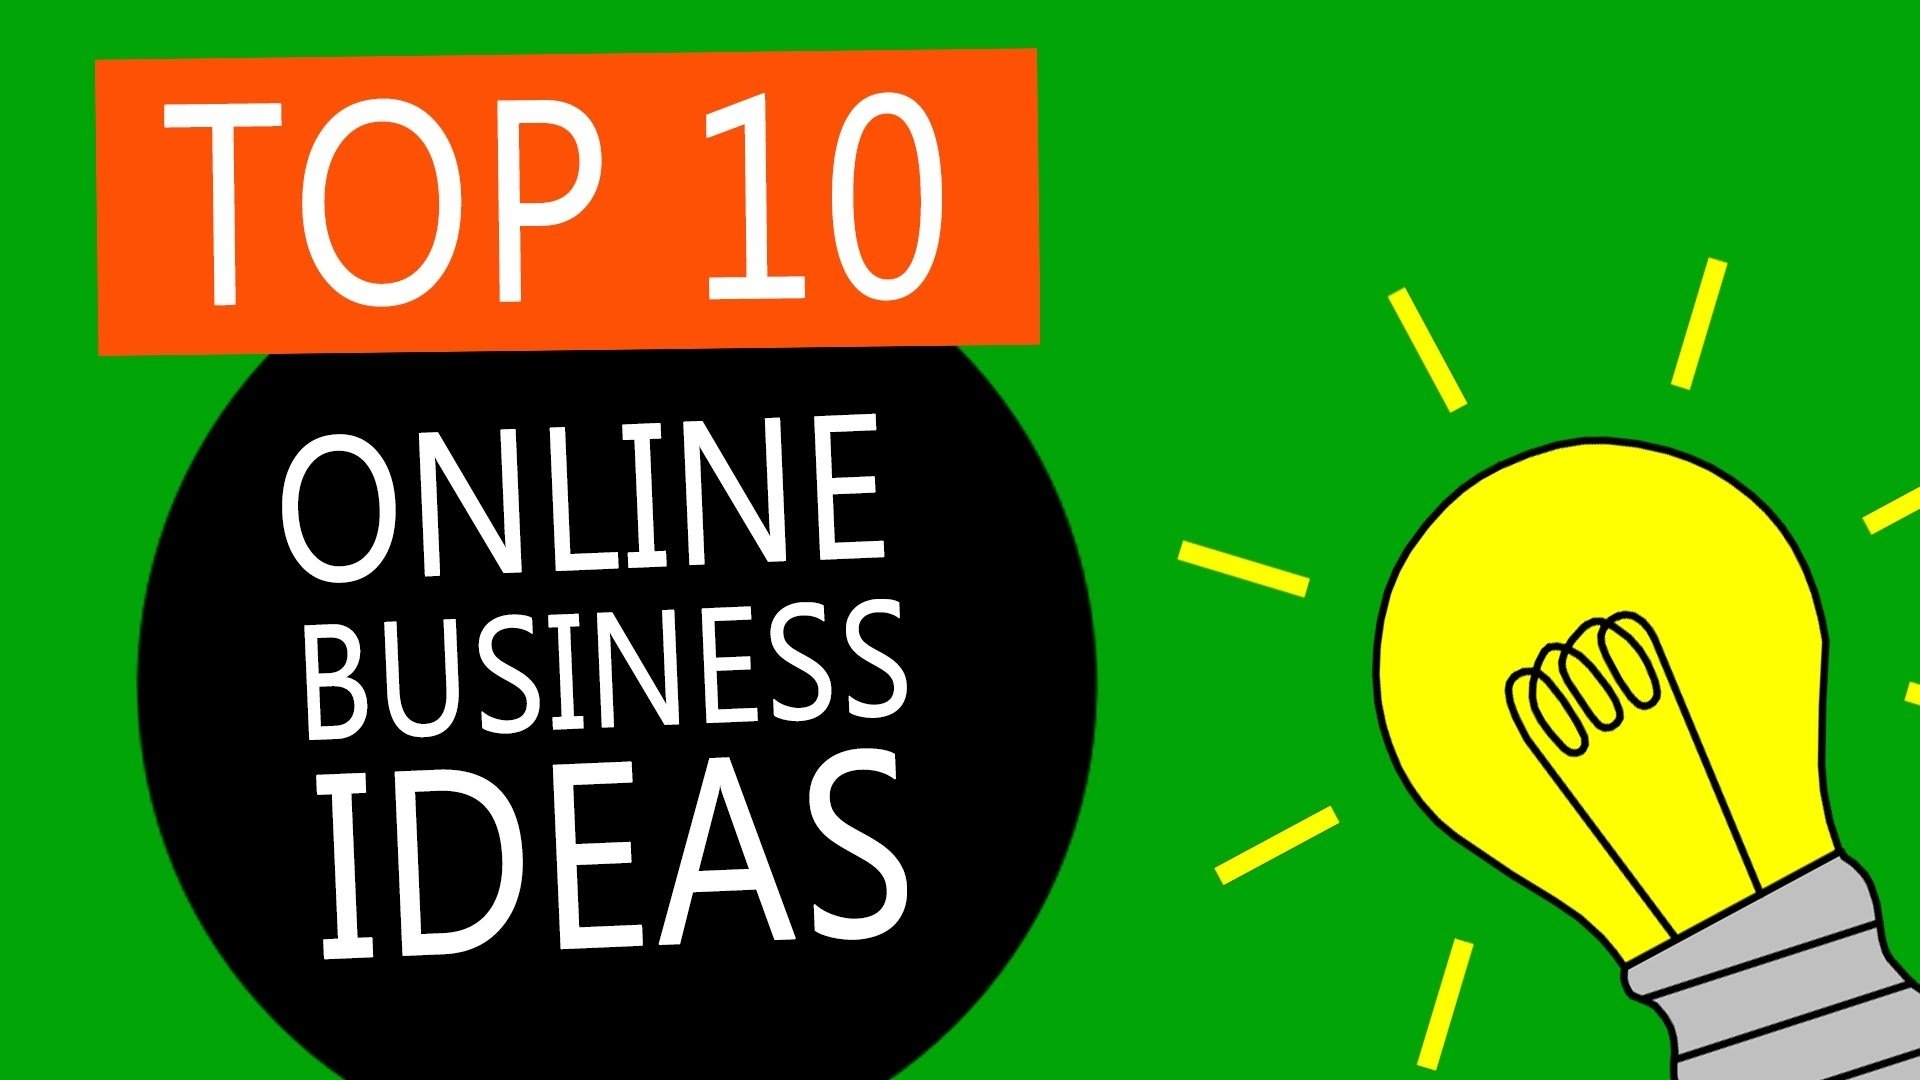 10 Lovable Business Ideas For Young Entrepreneurs top 10 best online business ideas to start a small business youtube 6 2021